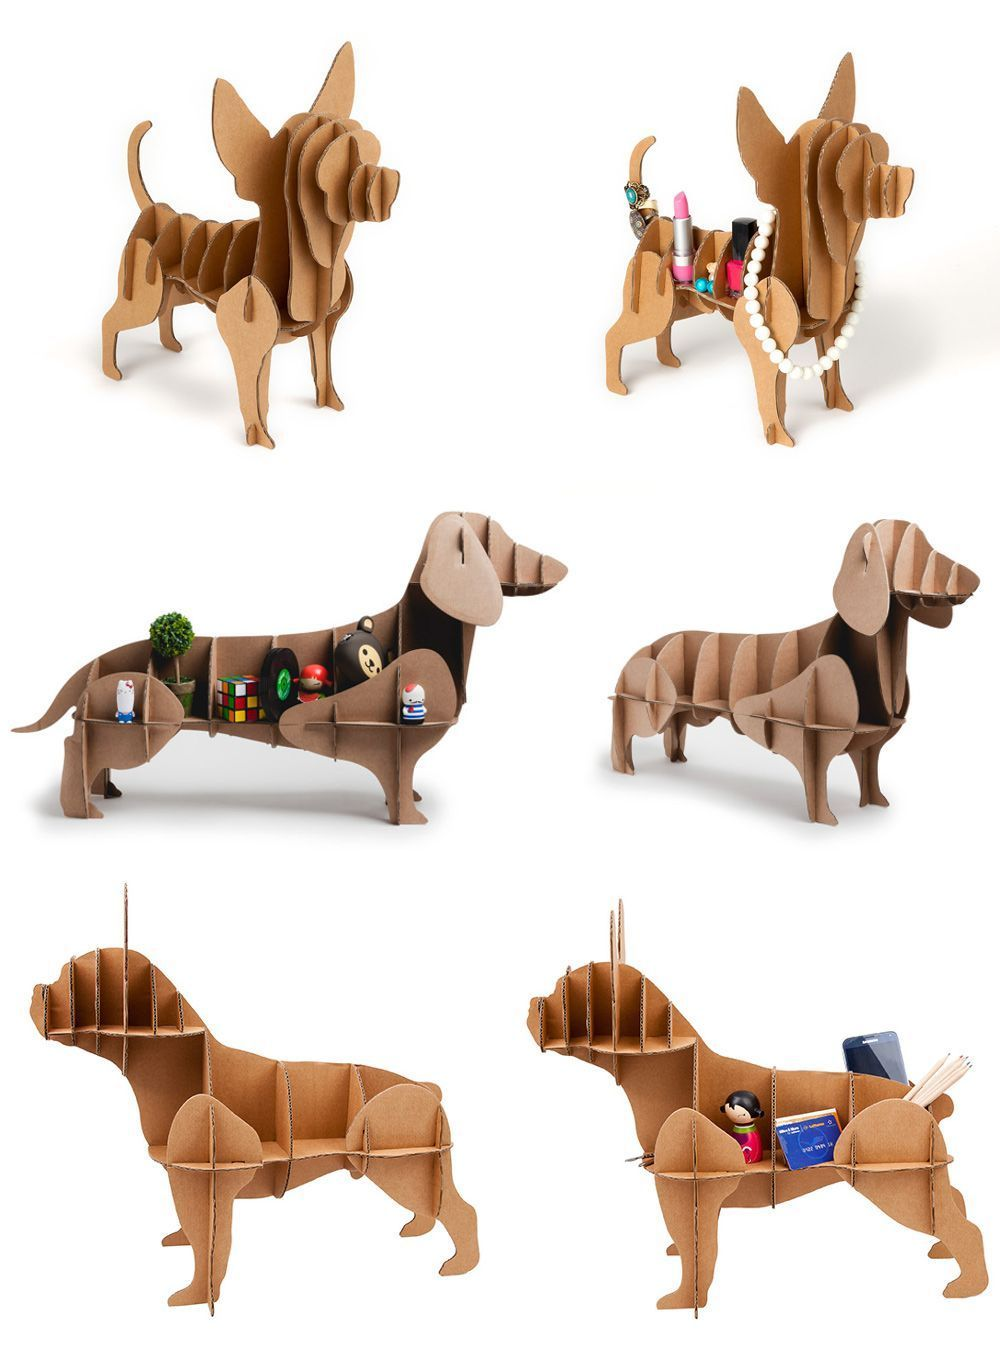 #cardboard #shelves #store #stuff #these #your #with #cute #dogStore Your Stuff with These Cute Cardboard Dog Shelves Store Your Stuff with These Cute Cardboard Dog Shelves #cardboardshelves #cardboard #shelves #store #stuff #these #your #with #cute #dogStore Your Stuff with These Cute Cardboard Dog Shelves Store Your Stuff with These Cute Cardboard Dog Shelves #cardboardshelves